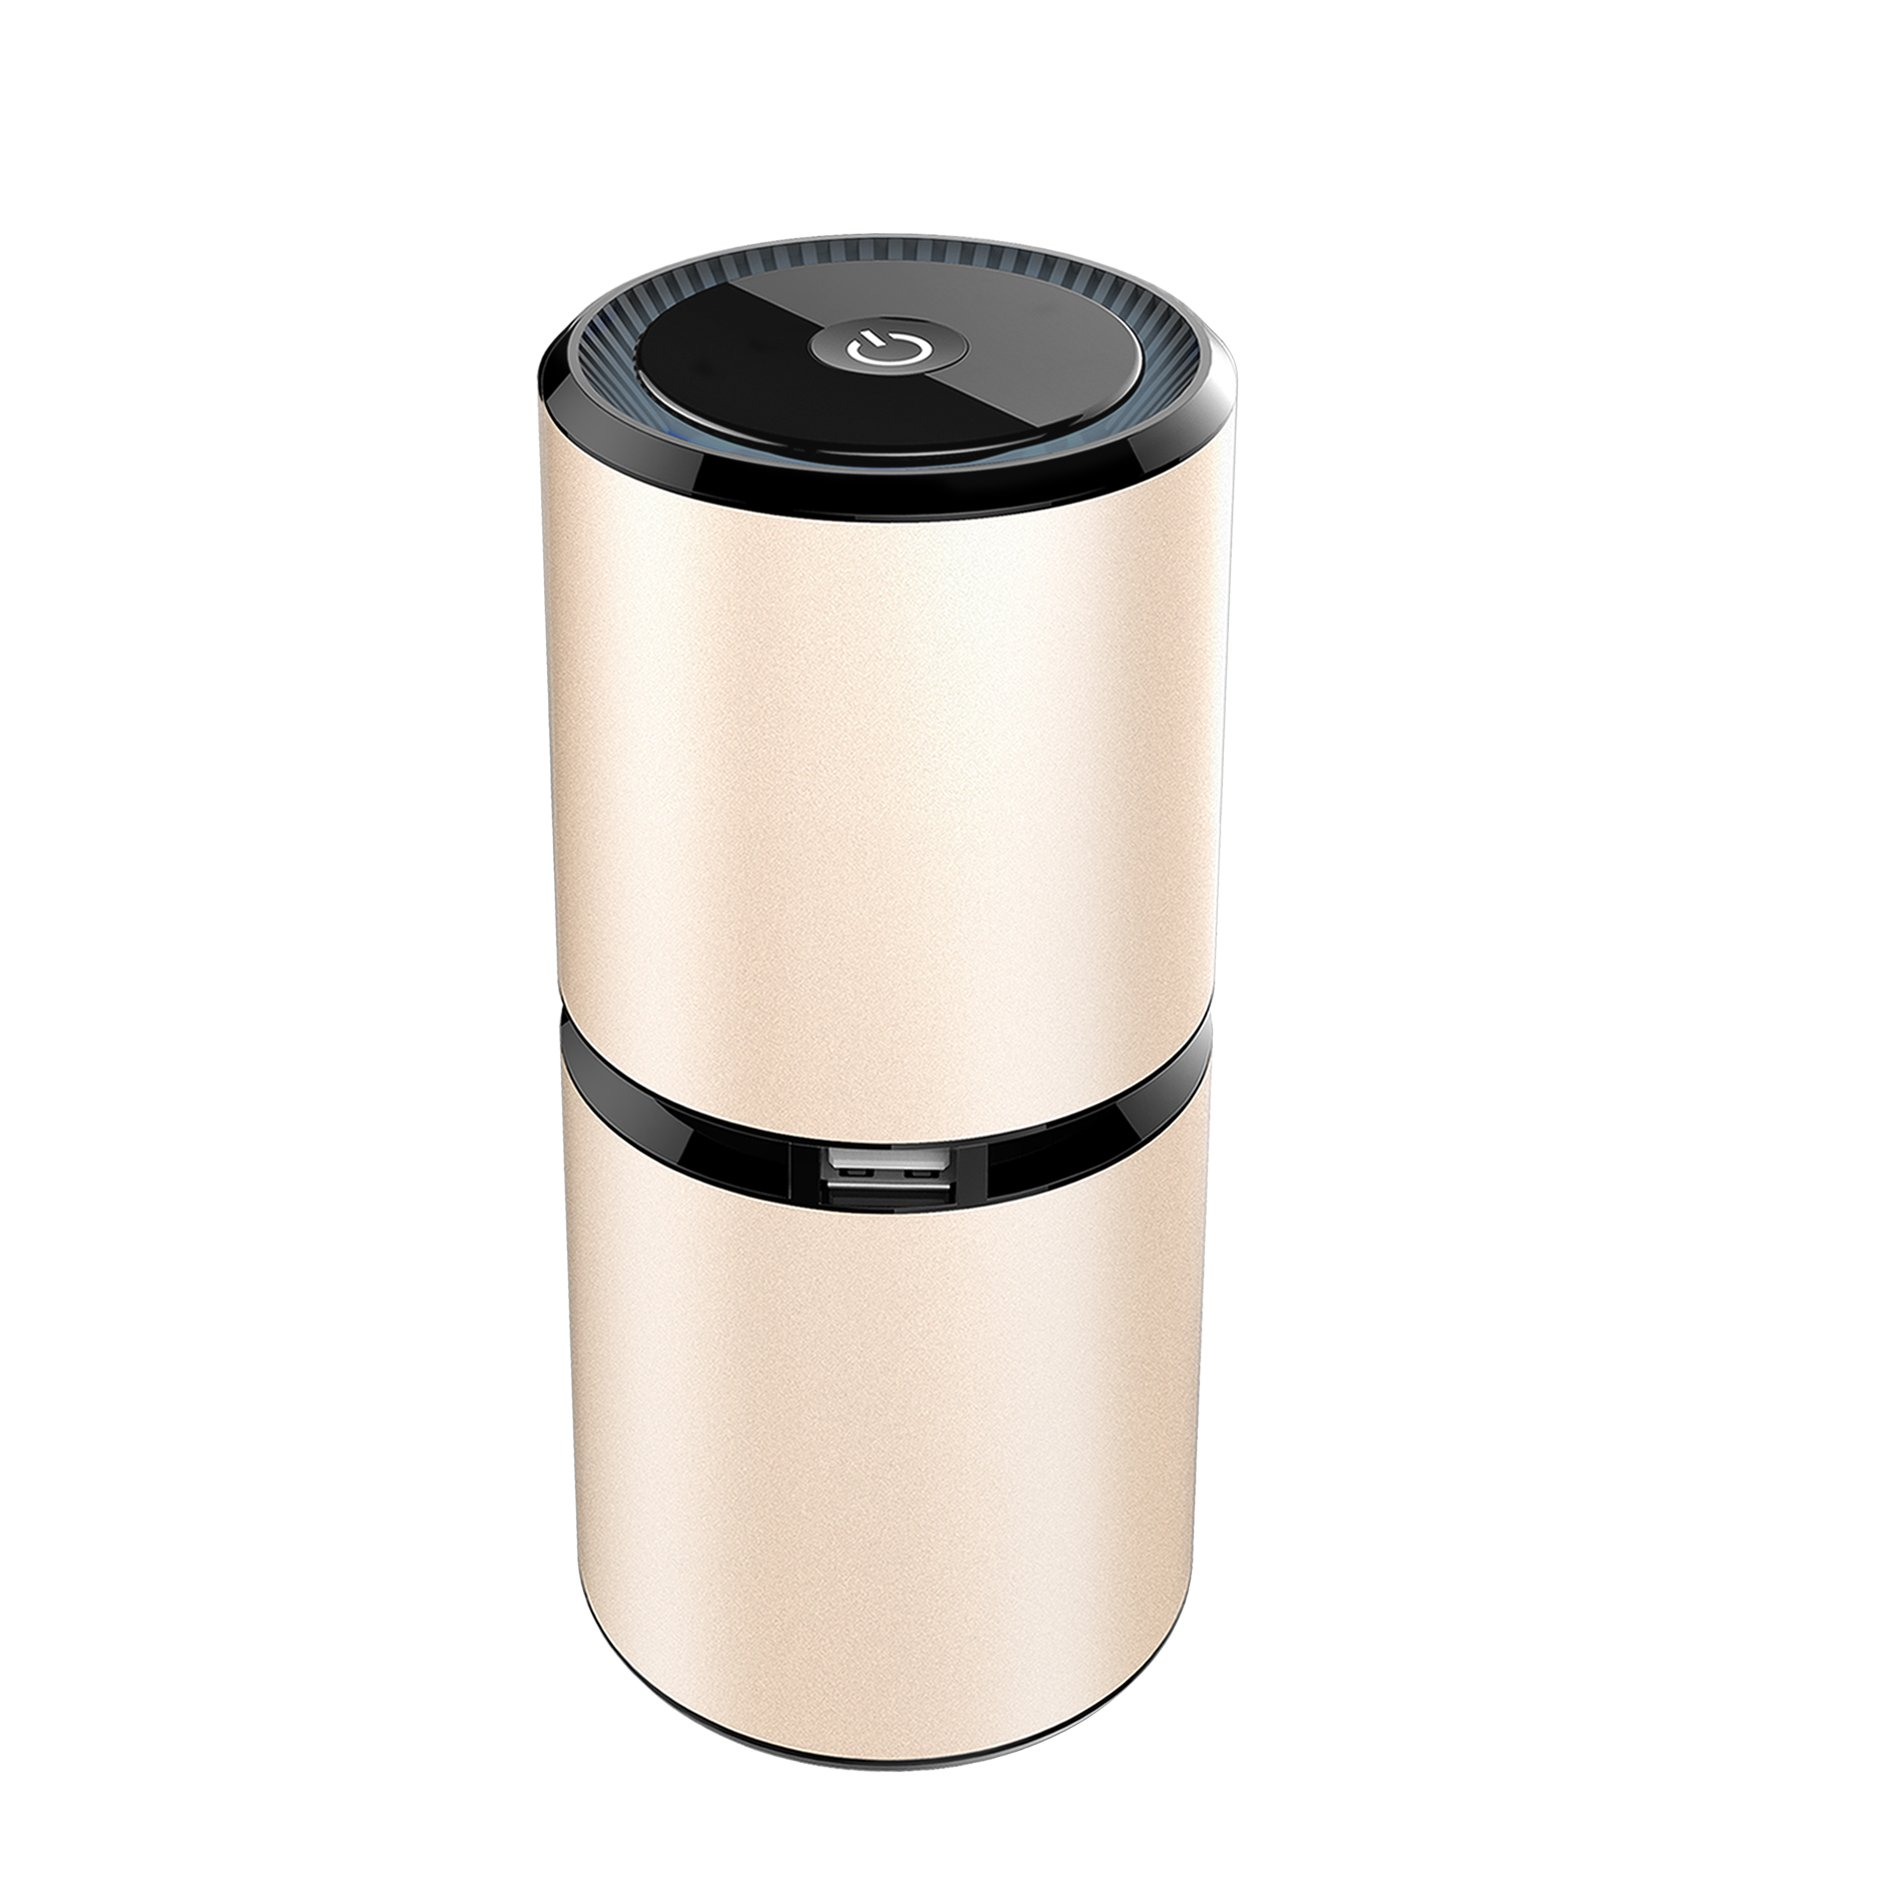 Thinkga Travel Size Car Air Purifier, Removes Dust, Cigarette Smoke, Bad Odors, Release Anion- Available For Automobile and Small Room- Silver